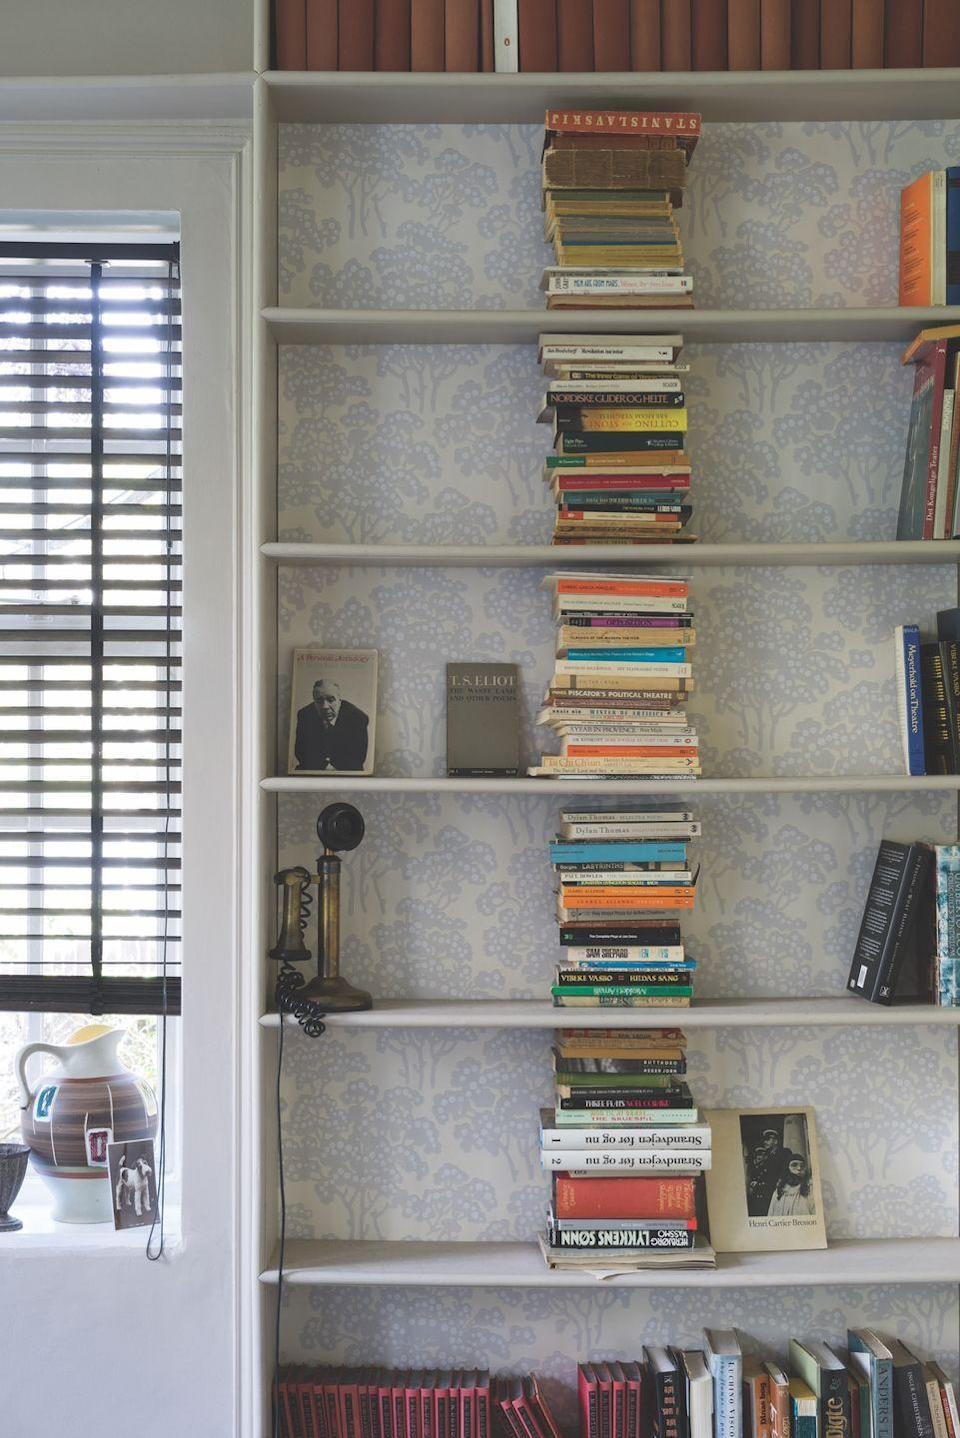 """<p>If you have wallpaper offcuts from a previous project, why not use them to put a patterned backing to a set of shelves? It looks much more interesting than plain white and means if you don't have enough books or accessories in your living room, there is always something lovely to look at. </p><p>Pictured: Hornbeam wallpaper BP5001; shelves in Pointing Estate Eggshell, both from <a href=""""https://go.redirectingat.com?id=127X1599956&url=https%3A%2F%2Fwww.farrow-ball.com%2F&sref=https%3A%2F%2Fwww.housebeautiful.com%2Fuk%2Fdecorate%2Fliving-room%2Fg35838996%2Fliving-room-wallpaper-ideas%2F"""" rel=""""nofollow noopener"""" target=""""_blank"""" data-ylk=""""slk:Farrow & Ball"""" class=""""link rapid-noclick-resp"""">Farrow & Ball</a></p>"""